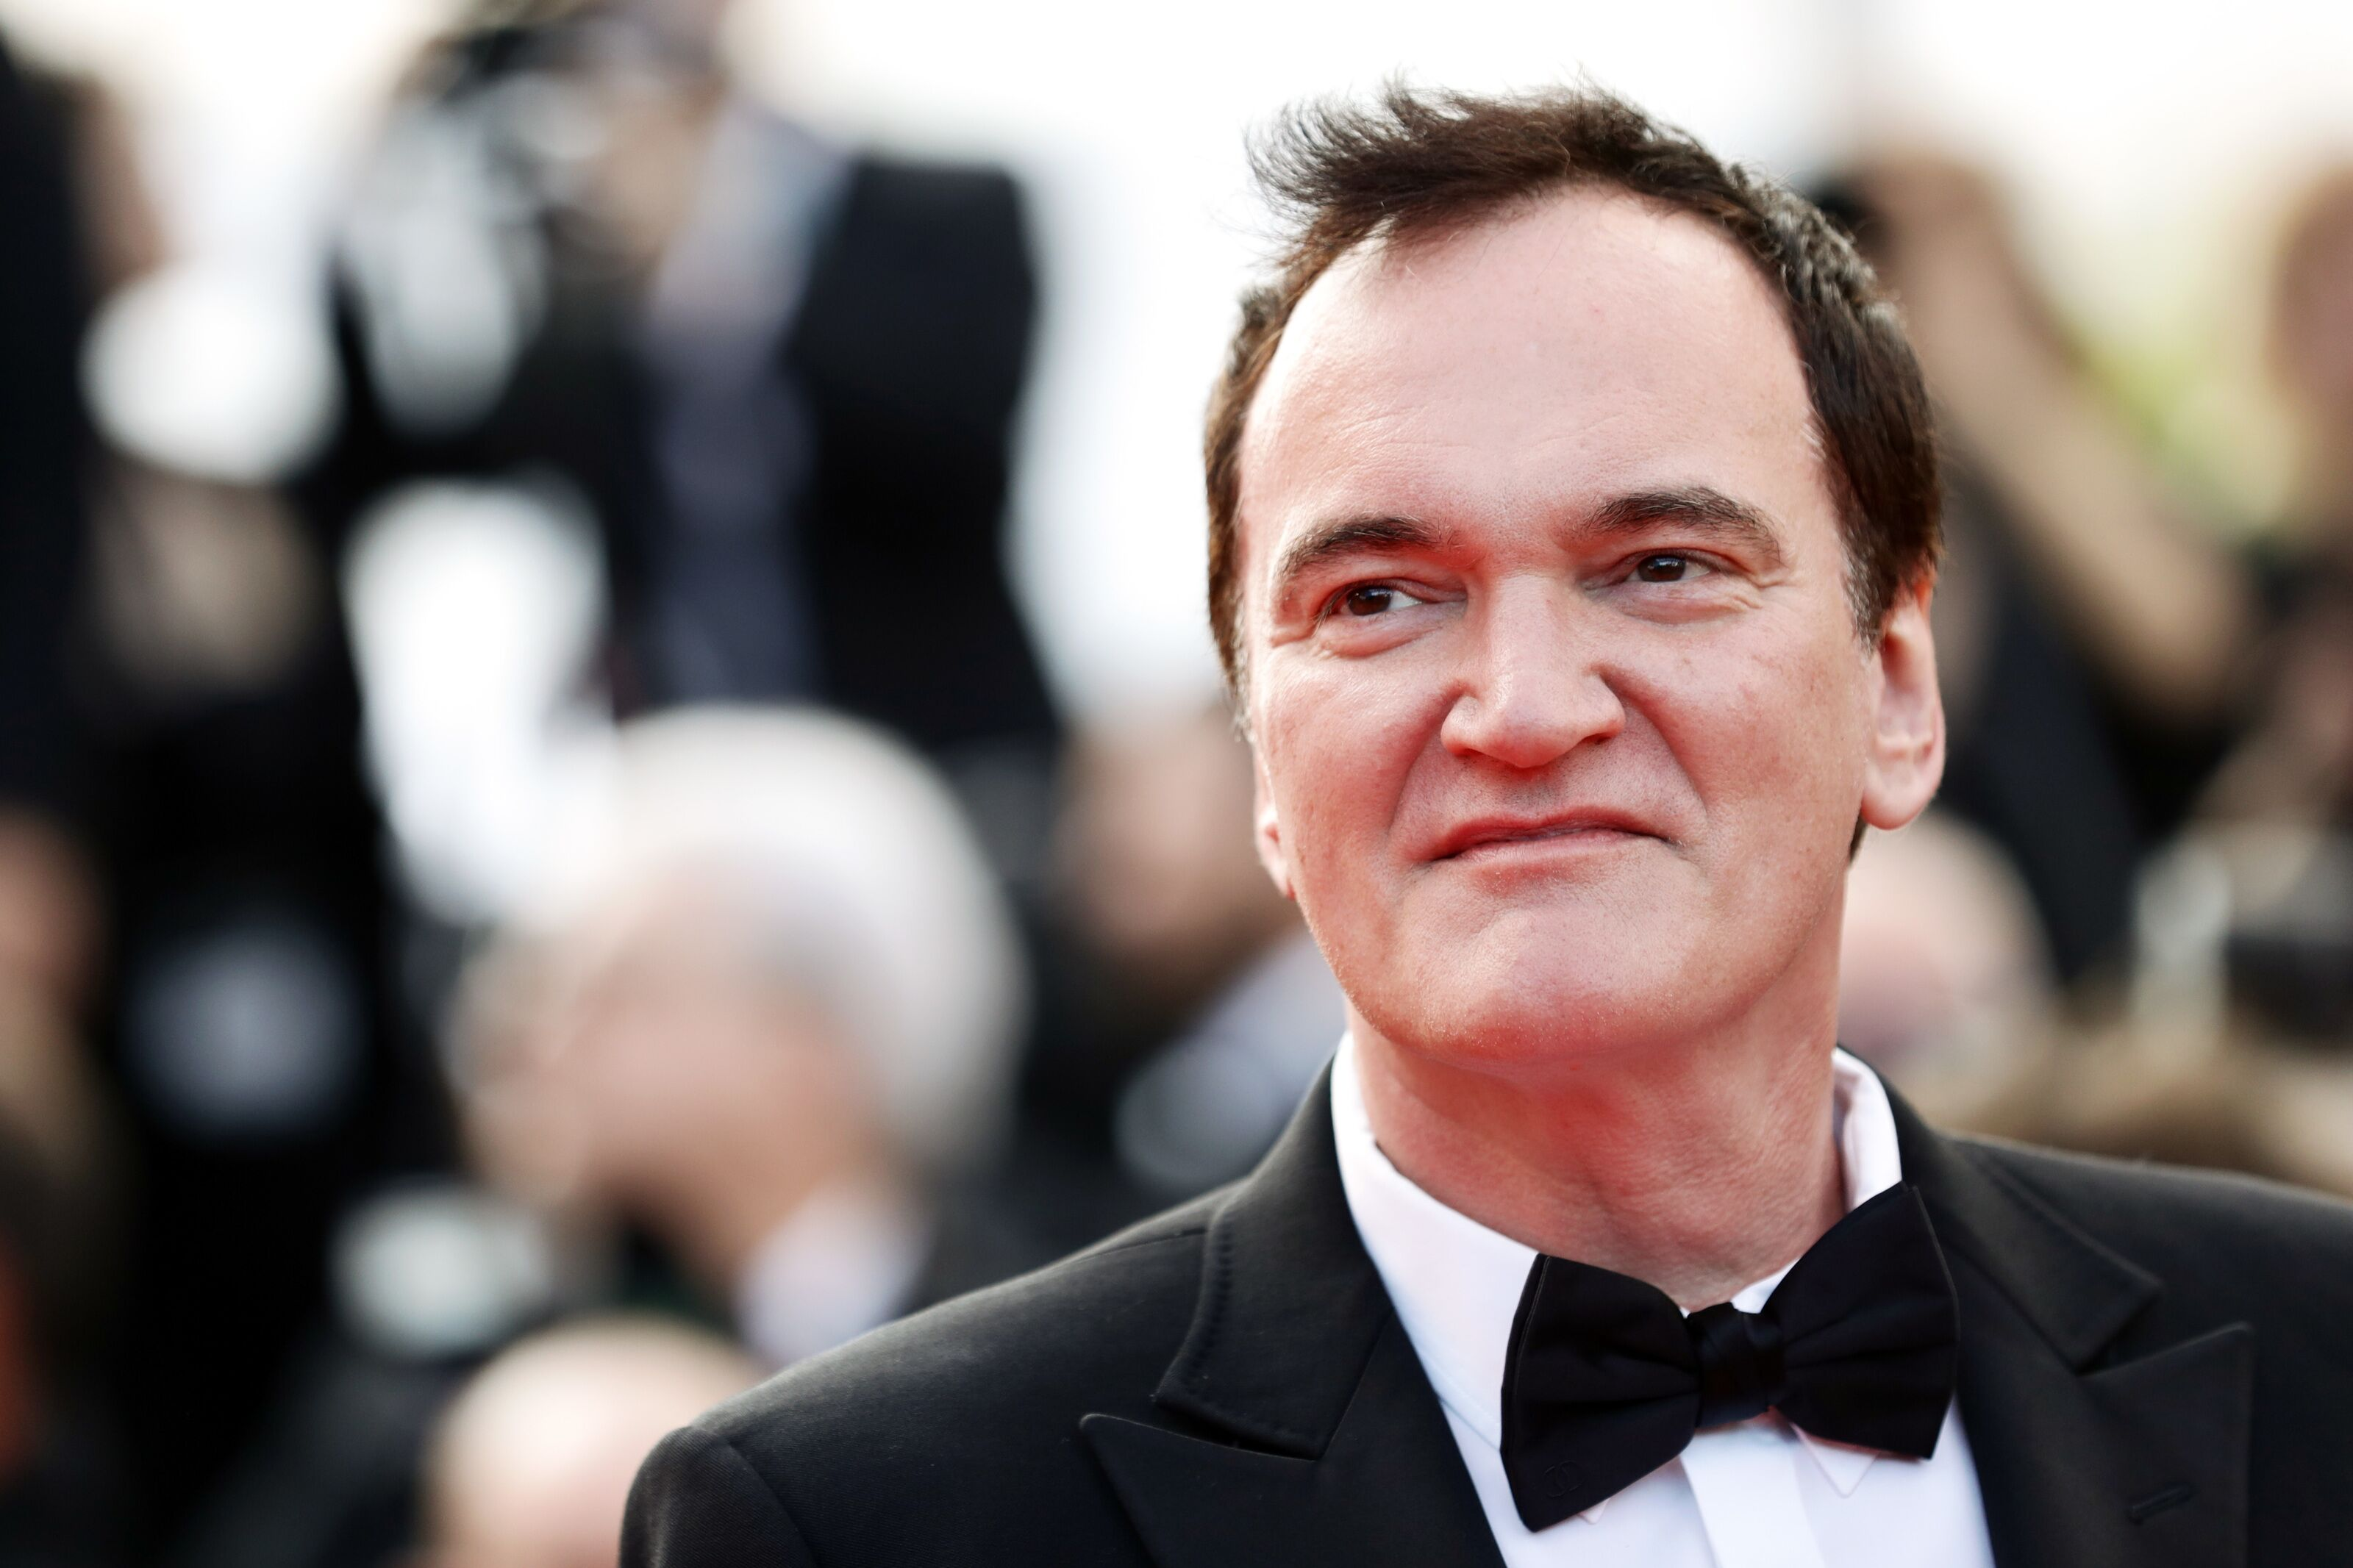 Quentin Tarantino's Star Trek potentially set in Prime Timeline